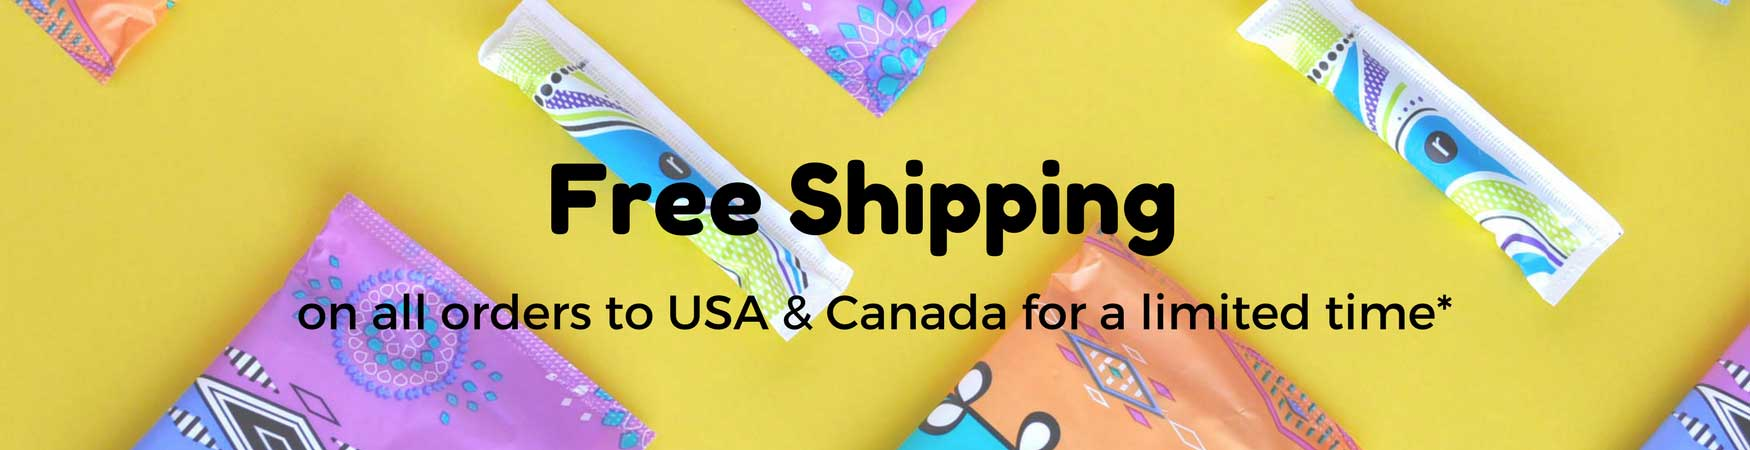 free shipping to usa and canada